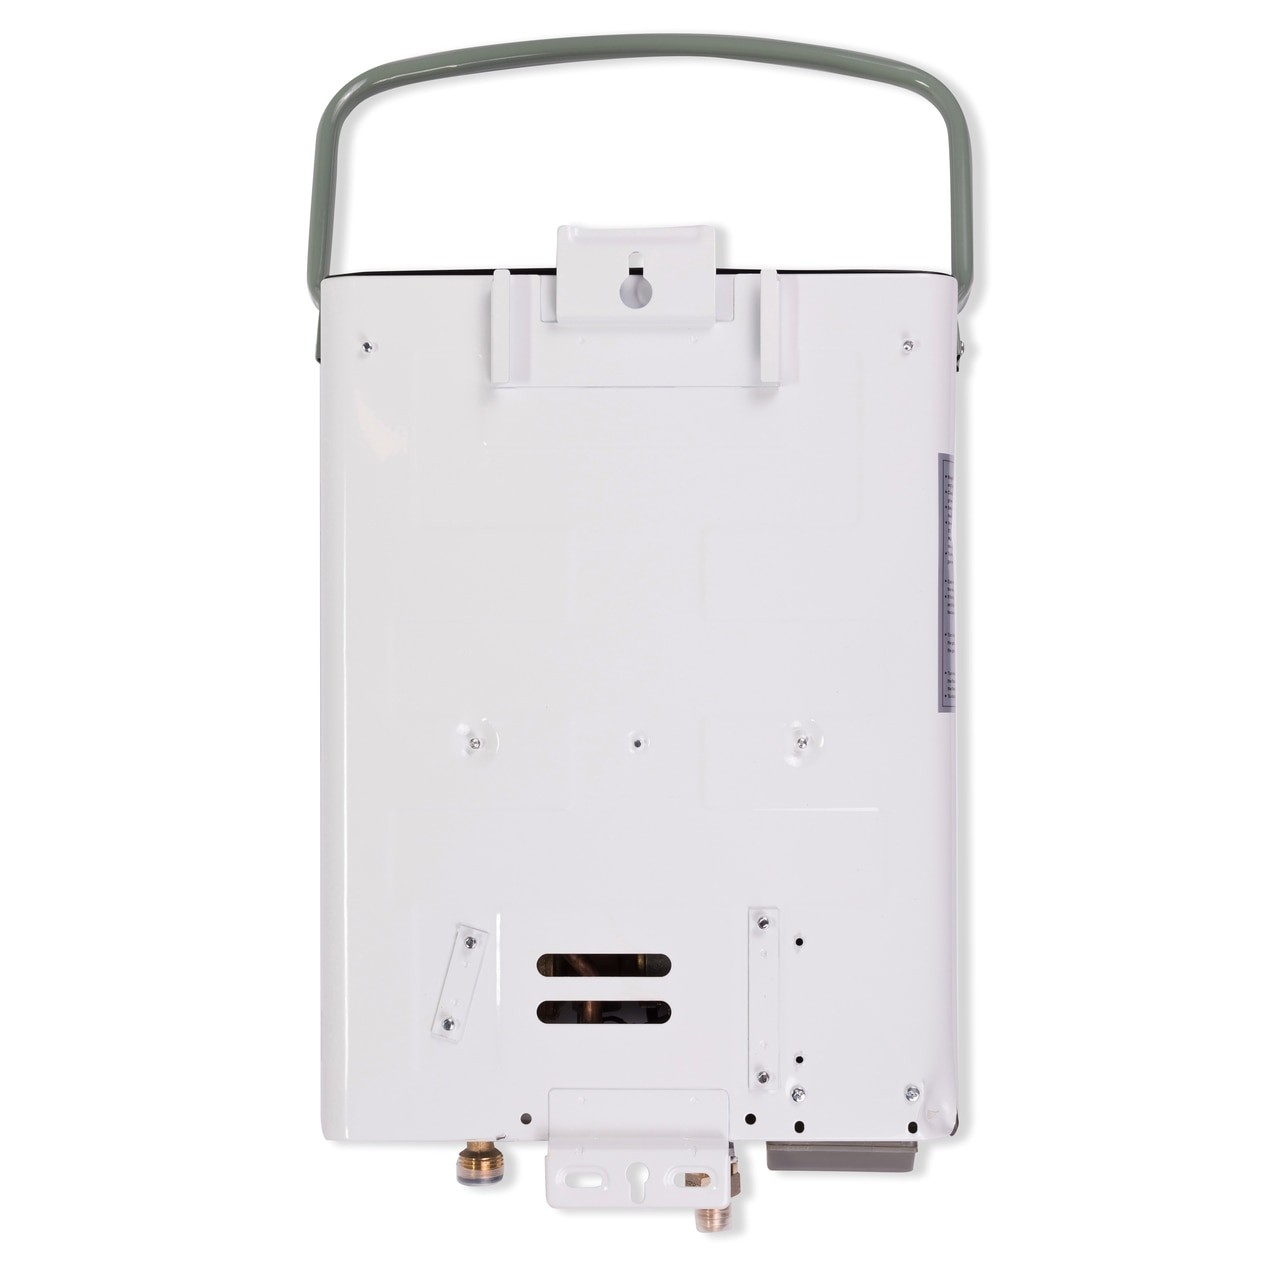 Eccotemp L5 Portable Tankless Water Heater Back View to enlarge